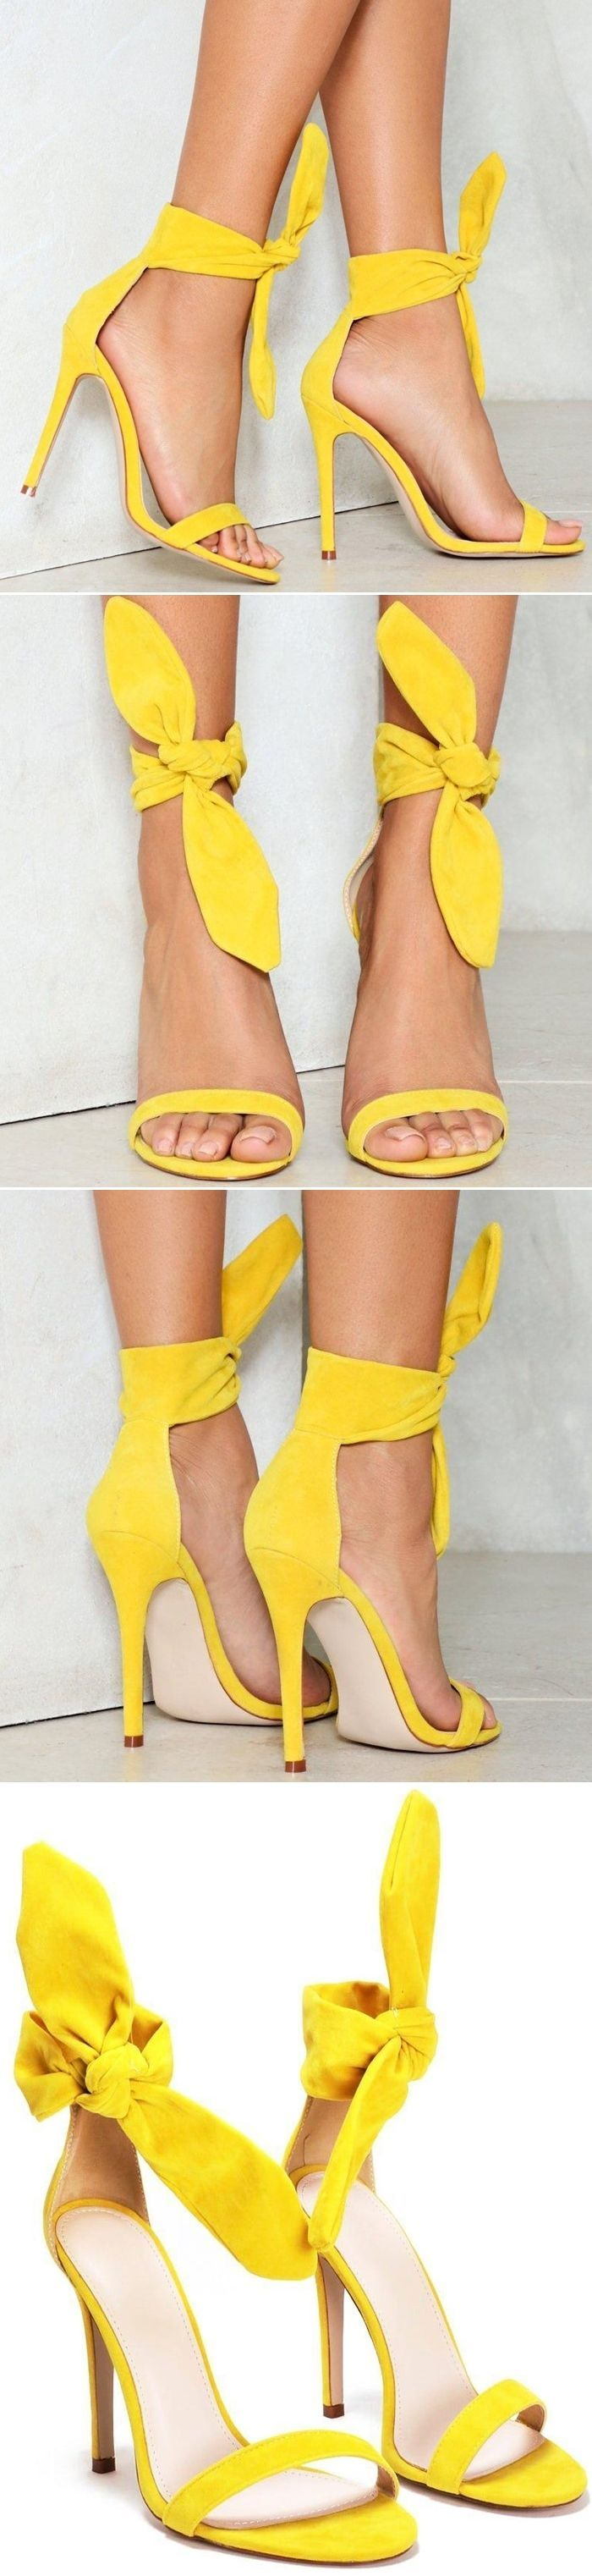 Knot A Care In The World This Yellow Shoe Comes In Vegan Suede And Features A Stiletto Heel Tie Closure At Ankle And Gelbe Schuhe Schuhe Hochhackige Schuhe